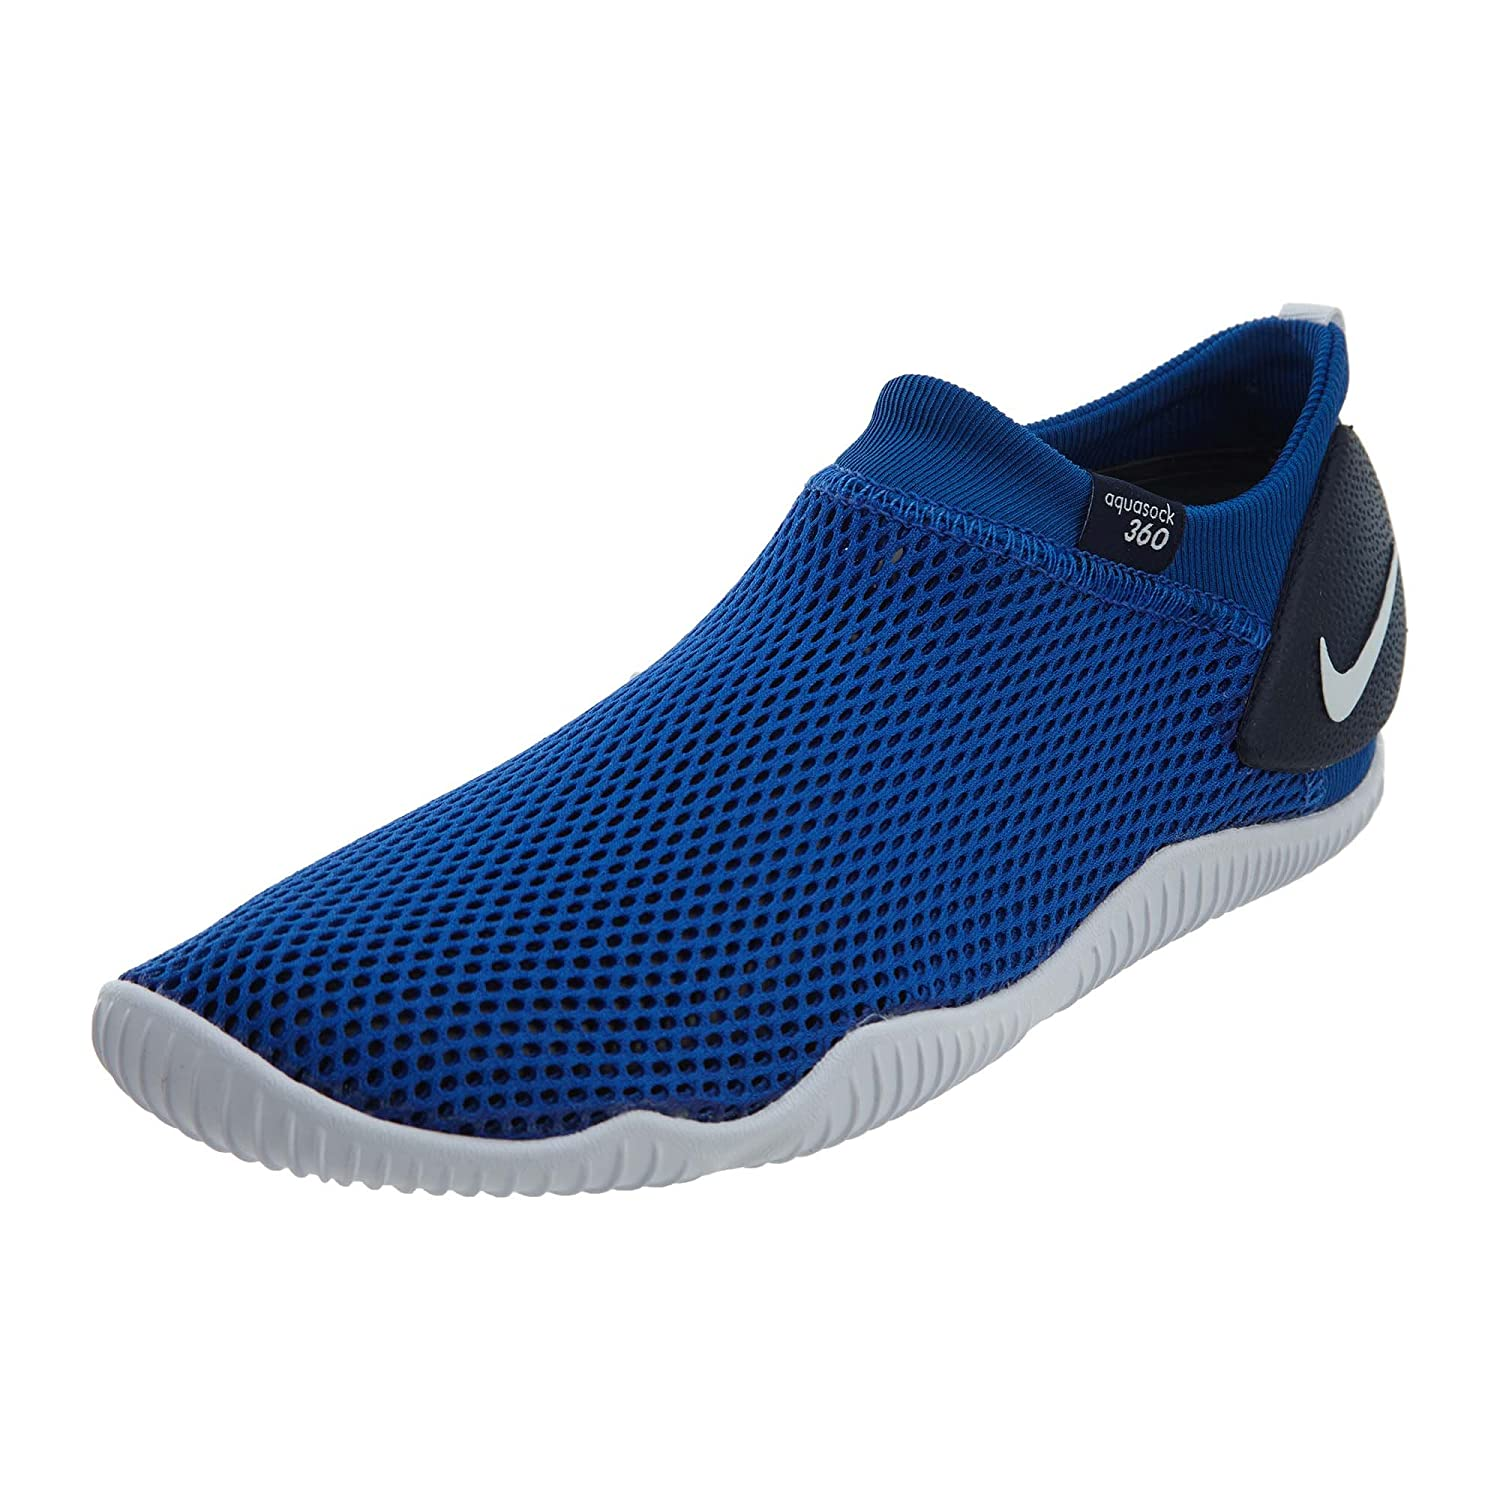 4fb48bbb3e NIKE Kids Aqua Sock 360 (Gs/Ps) / Royal-Obsdn: Buy Online at Low Prices in  India - Amazon.in